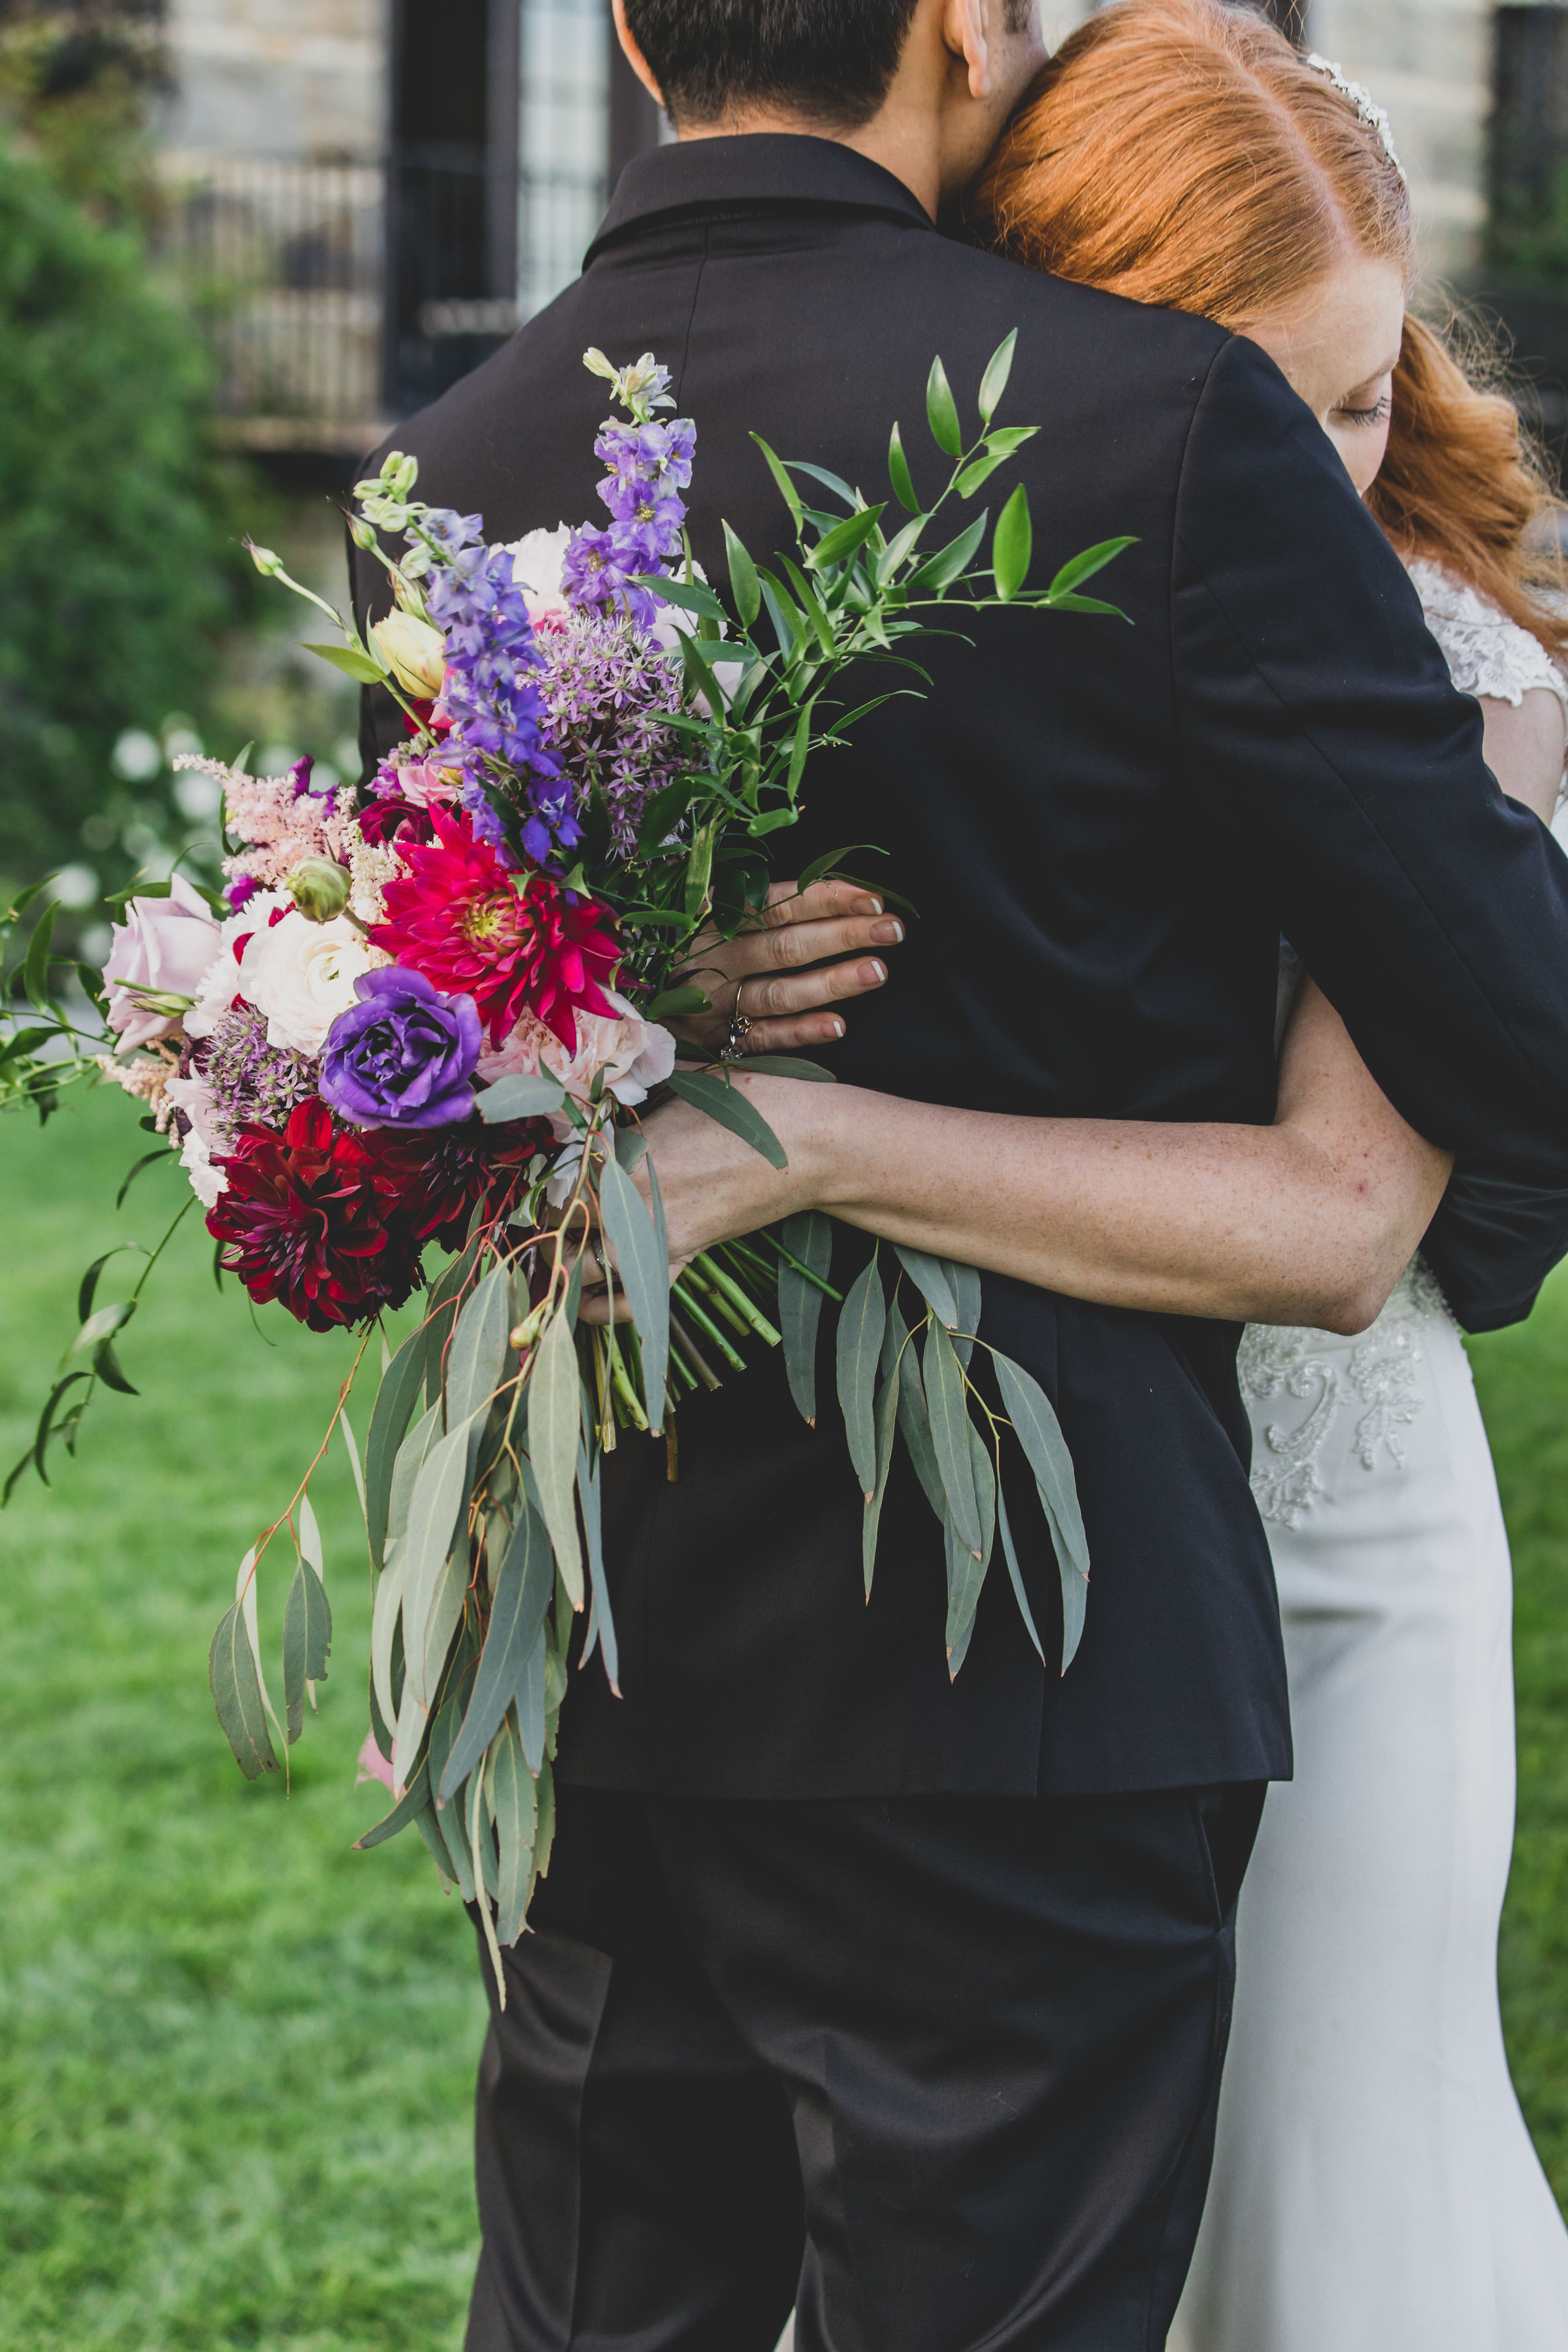 Wedding Photography - Pacific Palisades, CA - Bel Air Bay Club - The groom hugging his bride after their first look.